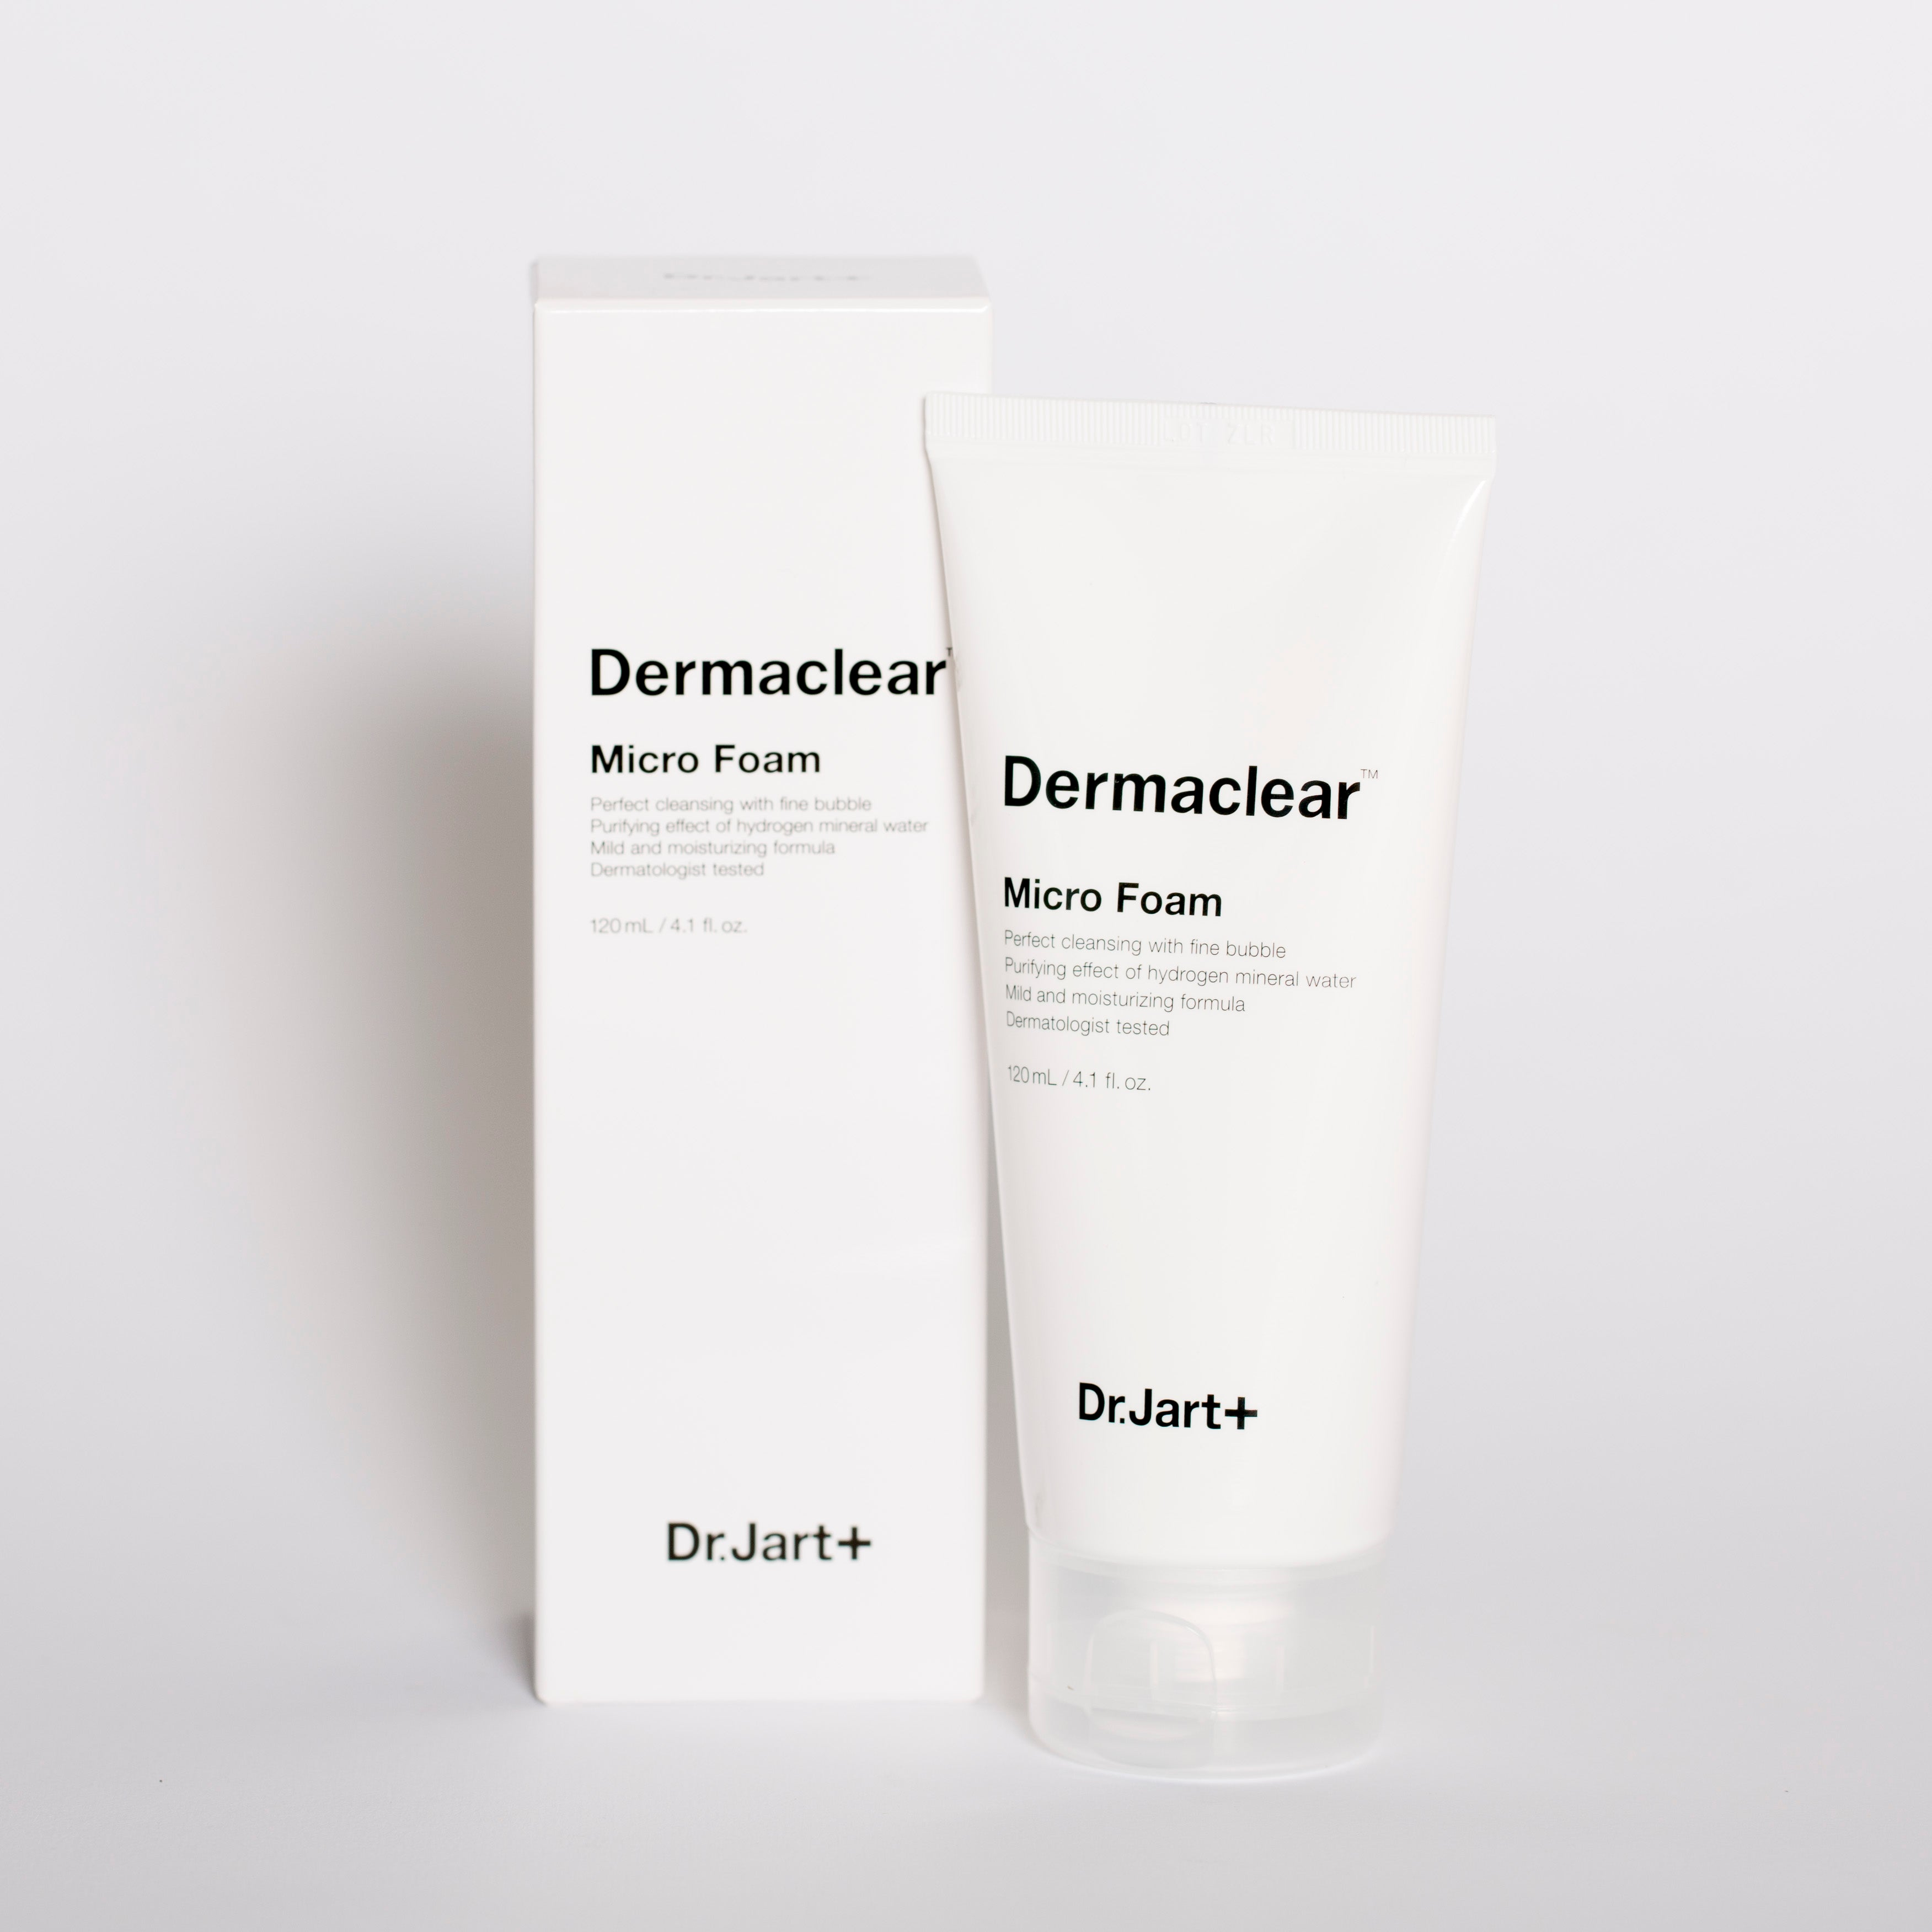 Dermaclear pro reviews